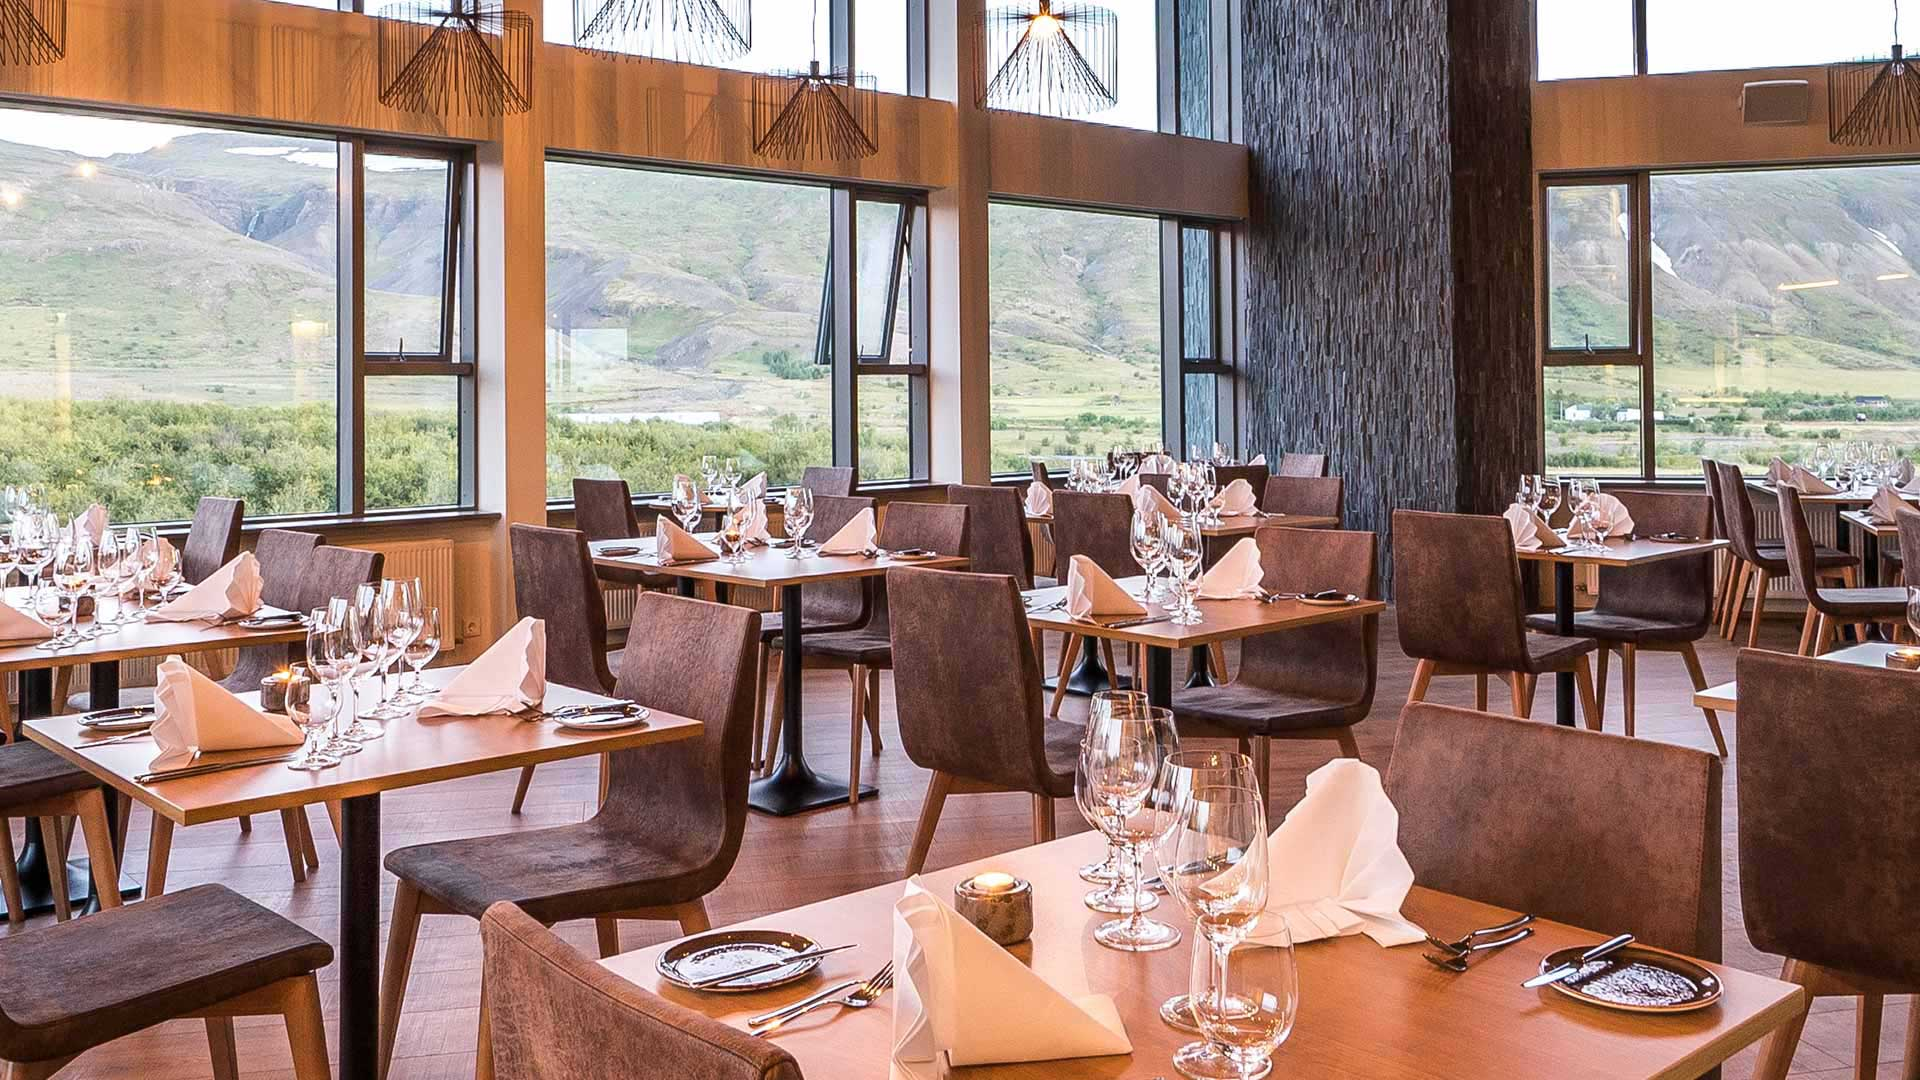 Dining hall with views across Húsafell